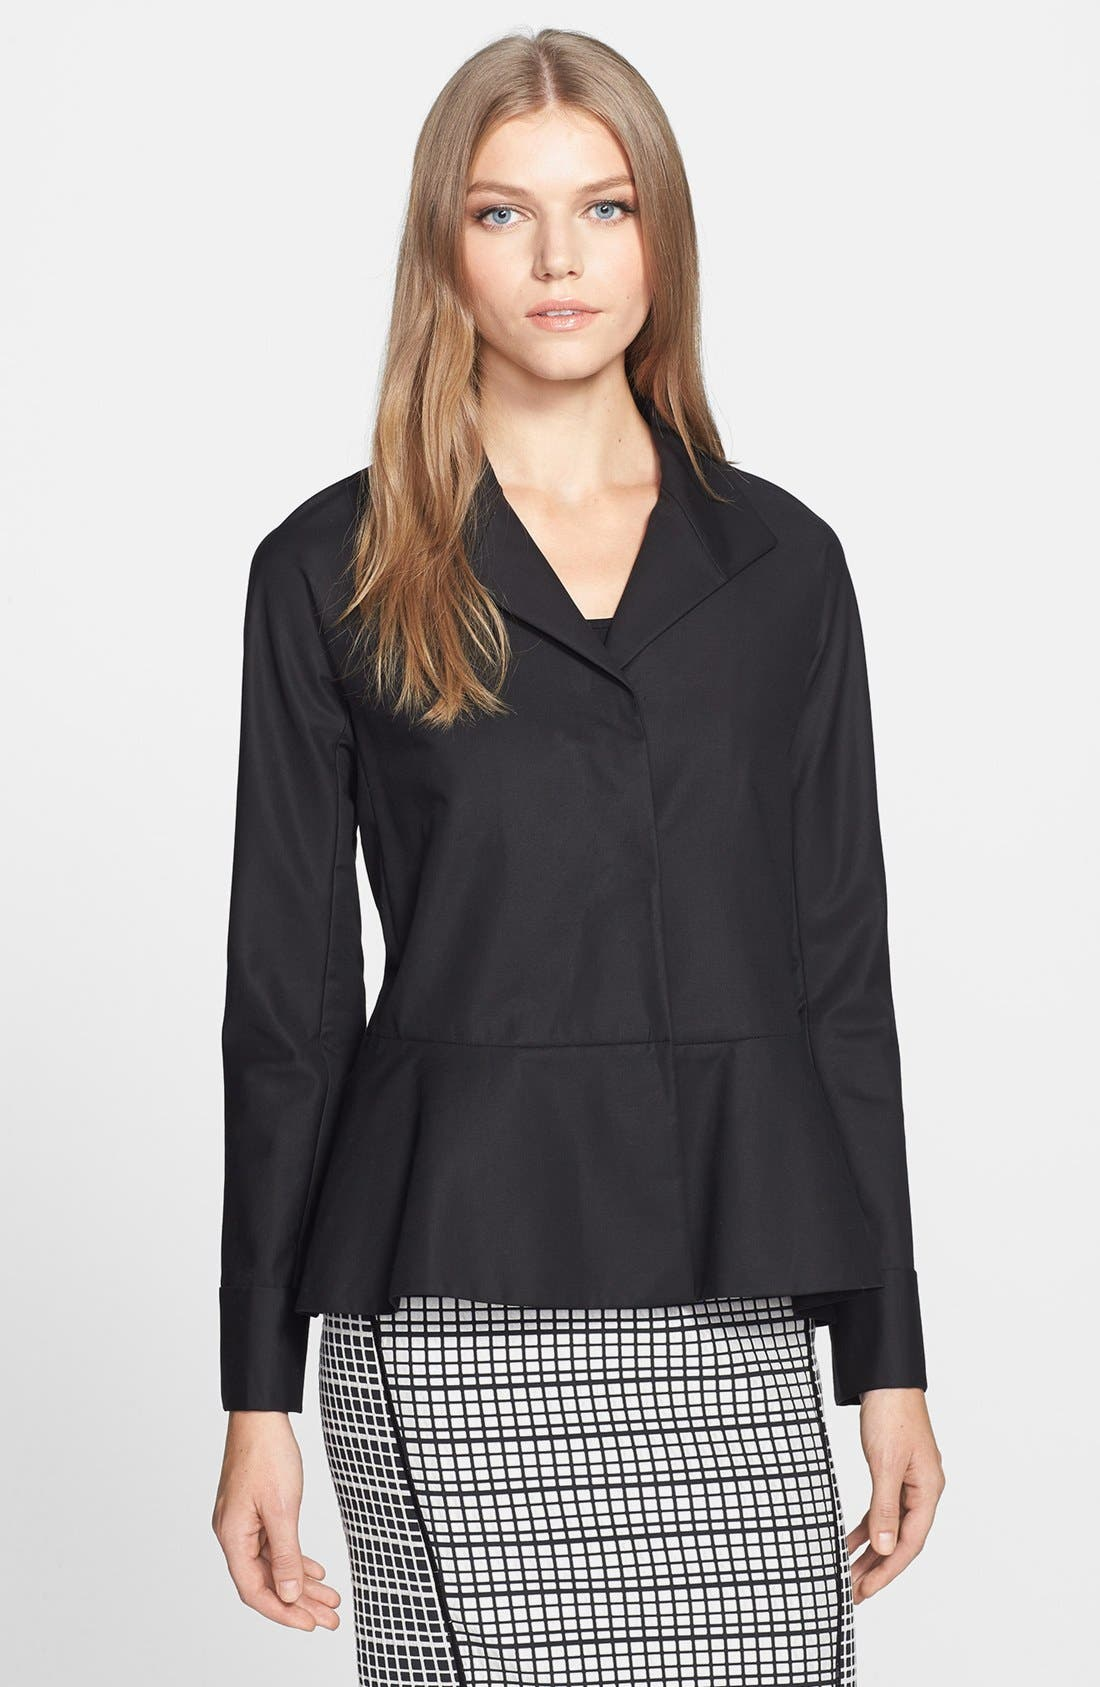 Alternate Image 1 Selected - Lafayette 148 New York 'Lara' Stretch Cotton Peplum Jacket